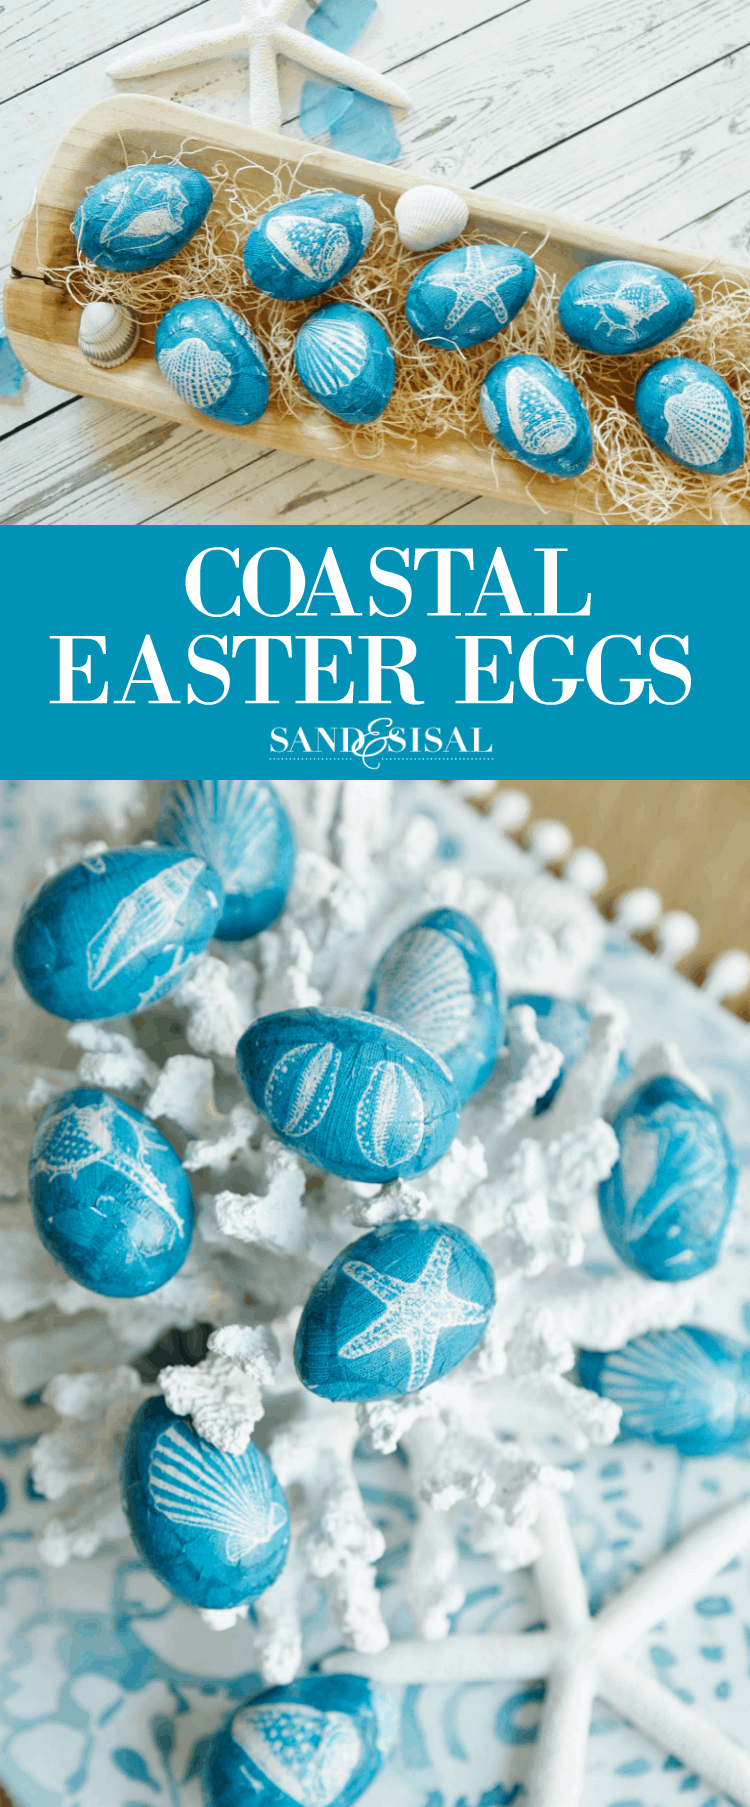 Costal Easter eggs